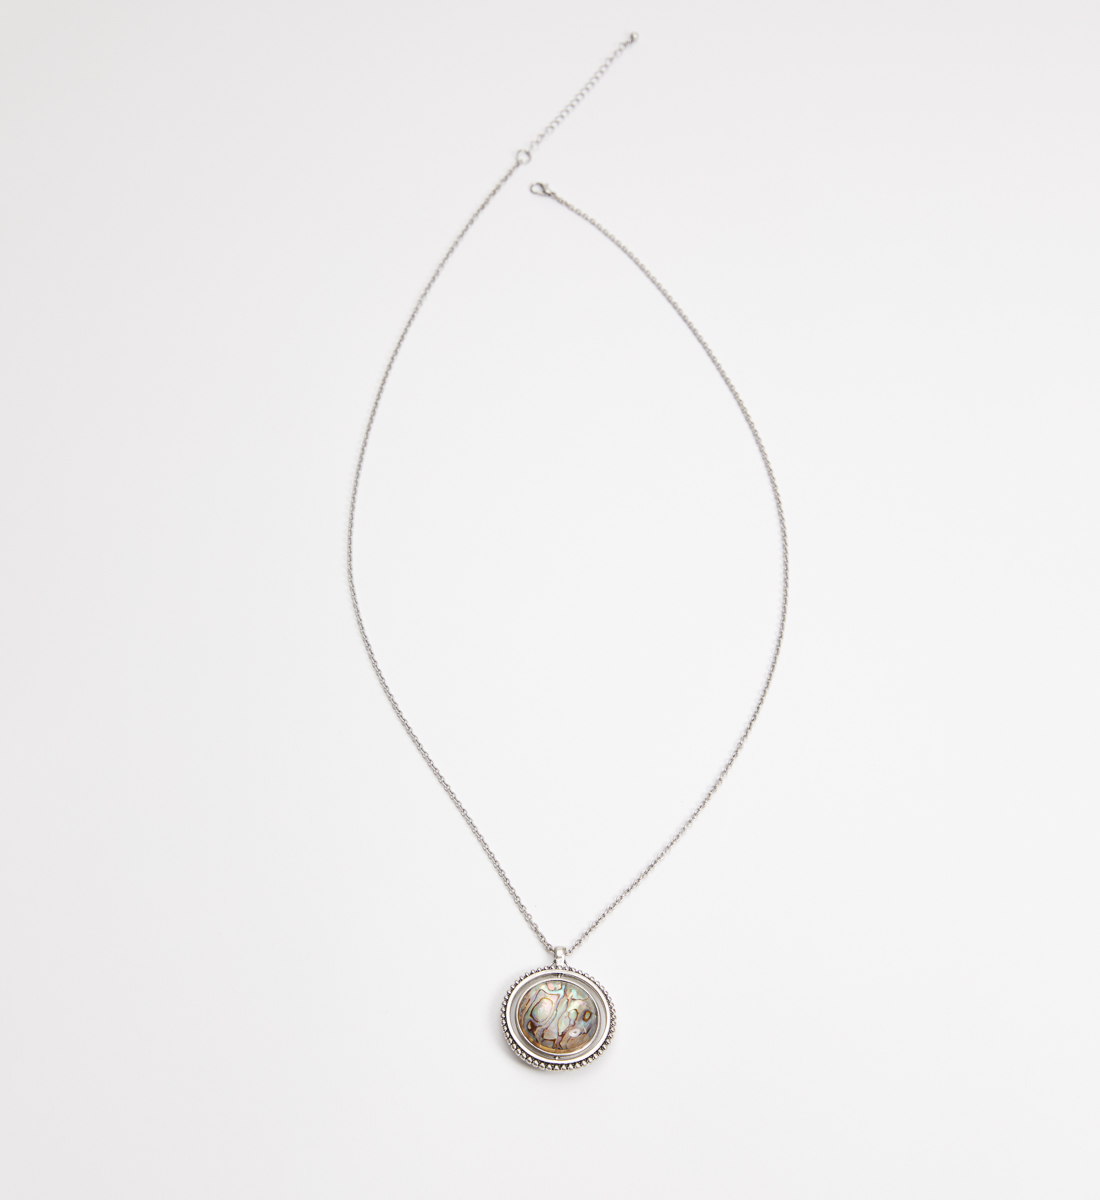 Silver-Tone Spinner Pendant Necklace,Silver Front